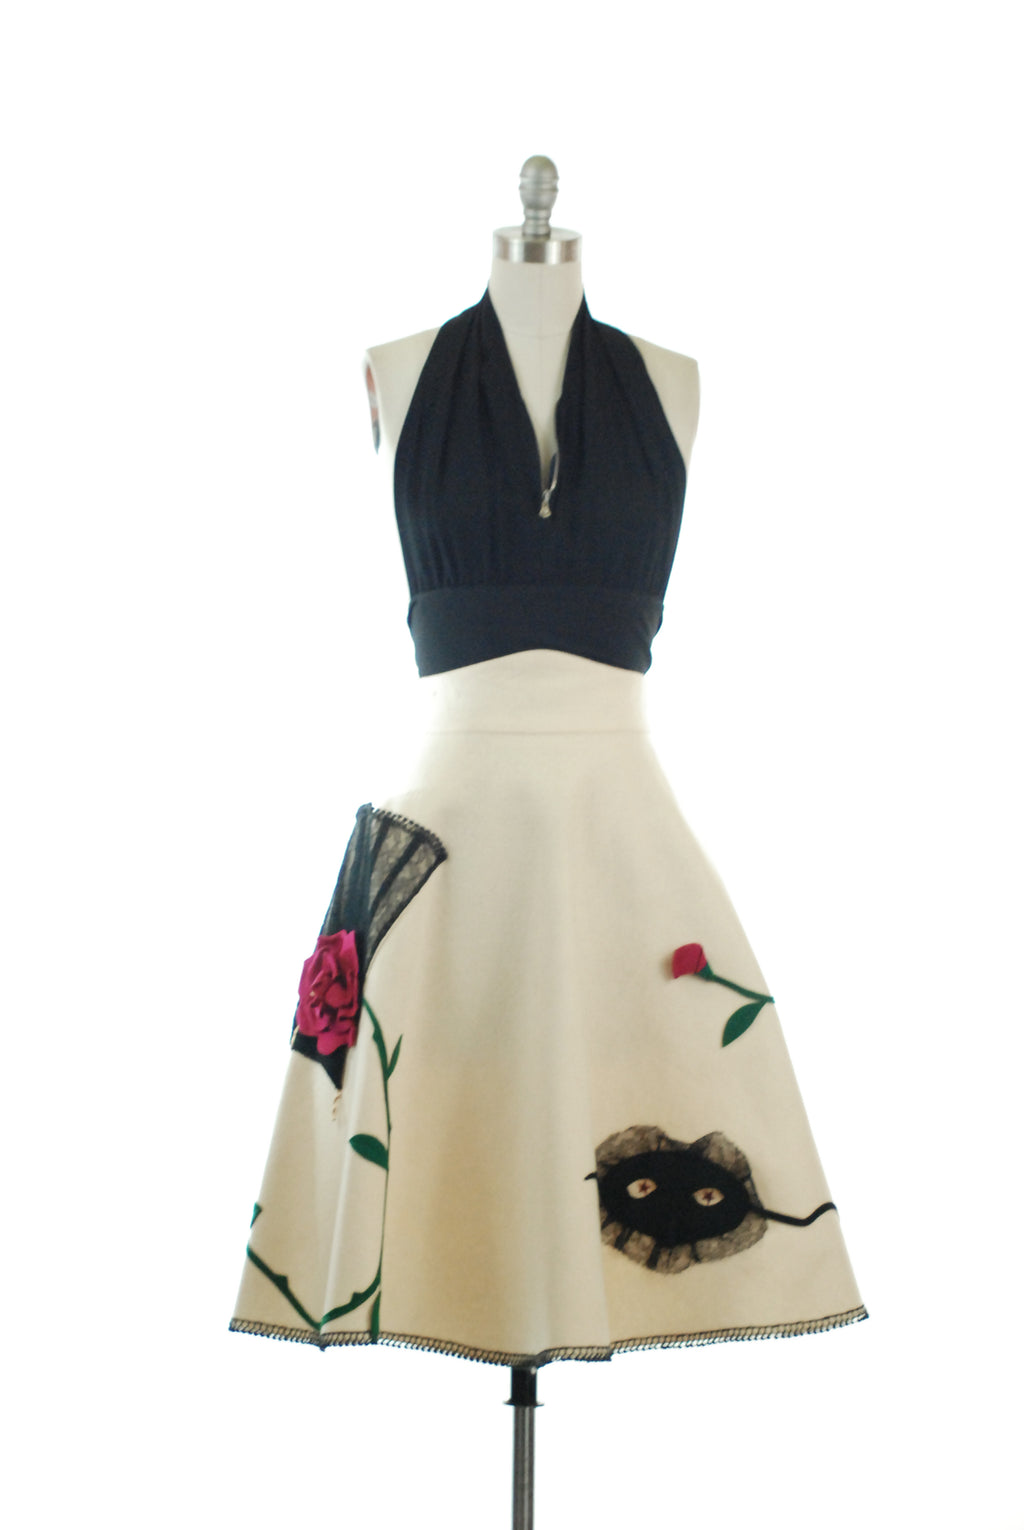 Exceptional 1950s Novelty Skirt in Appliqued Wool Felt with Masquerade Theme by Marguerite of California Poodle Skirt